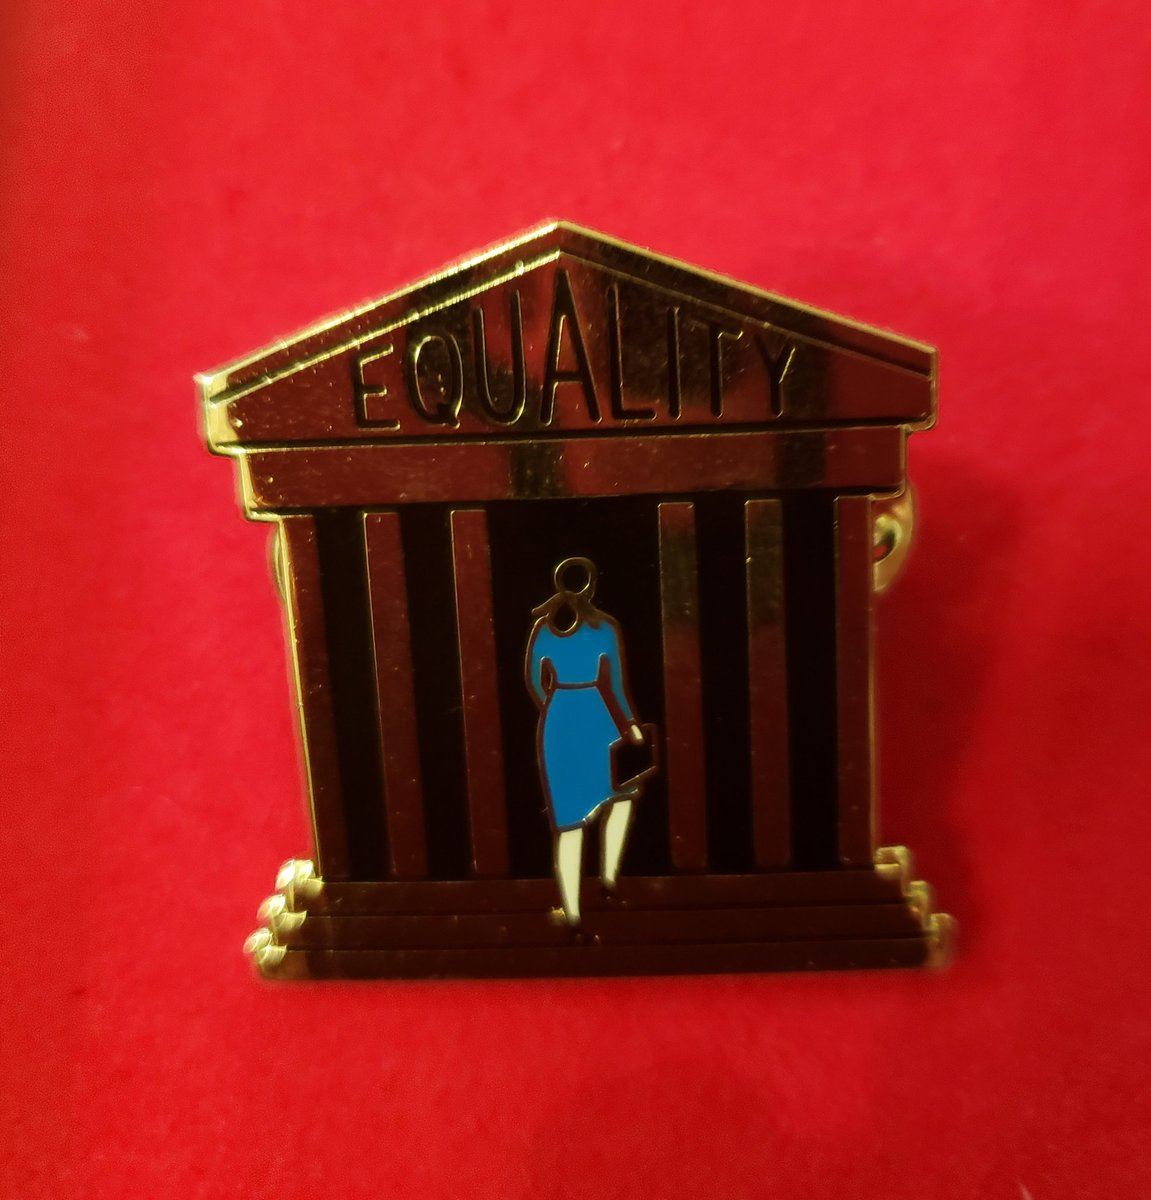 On #MSNBC with @RichardLui at 3:30 CT/4:30 ET talking about #Kavanaugh. Wearing this #JillsPin calling for a full investigation of all sexual assault & perjury charges agst Kavanaugh. #JillsPin demands equality for women at the Supreme Court (& the workplace, etc). #investigate https://t.co/JkWt786wMb